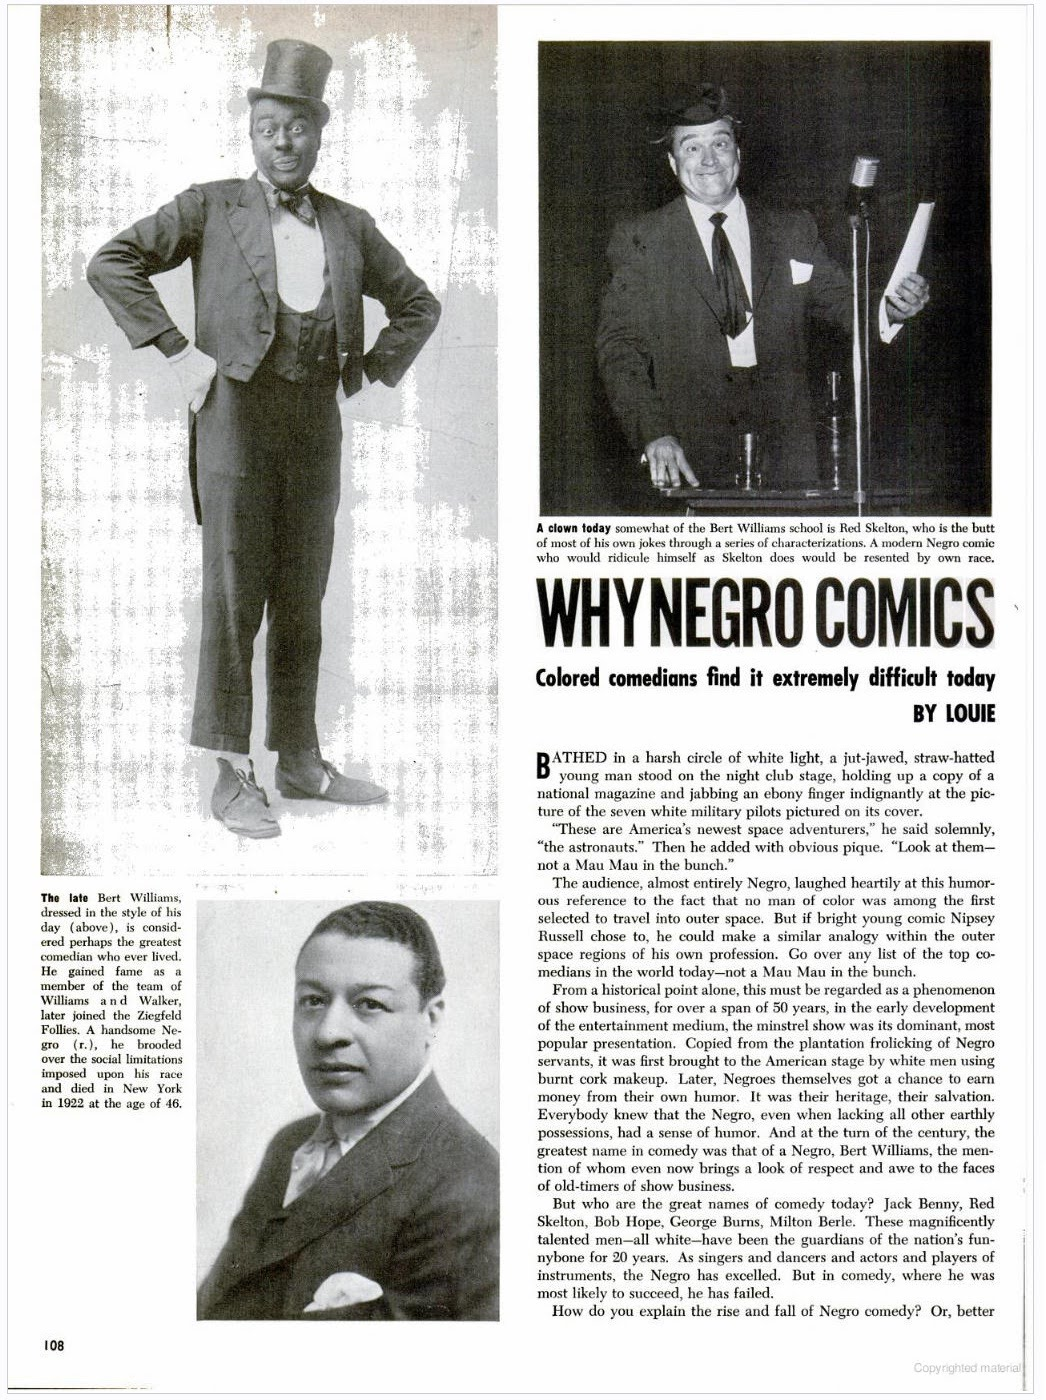 a review of bert williams the comic side of trouble Black face essays in response to the movie i have a lot of matters to comment on i was the comic side of trouble, bert williams wrote.